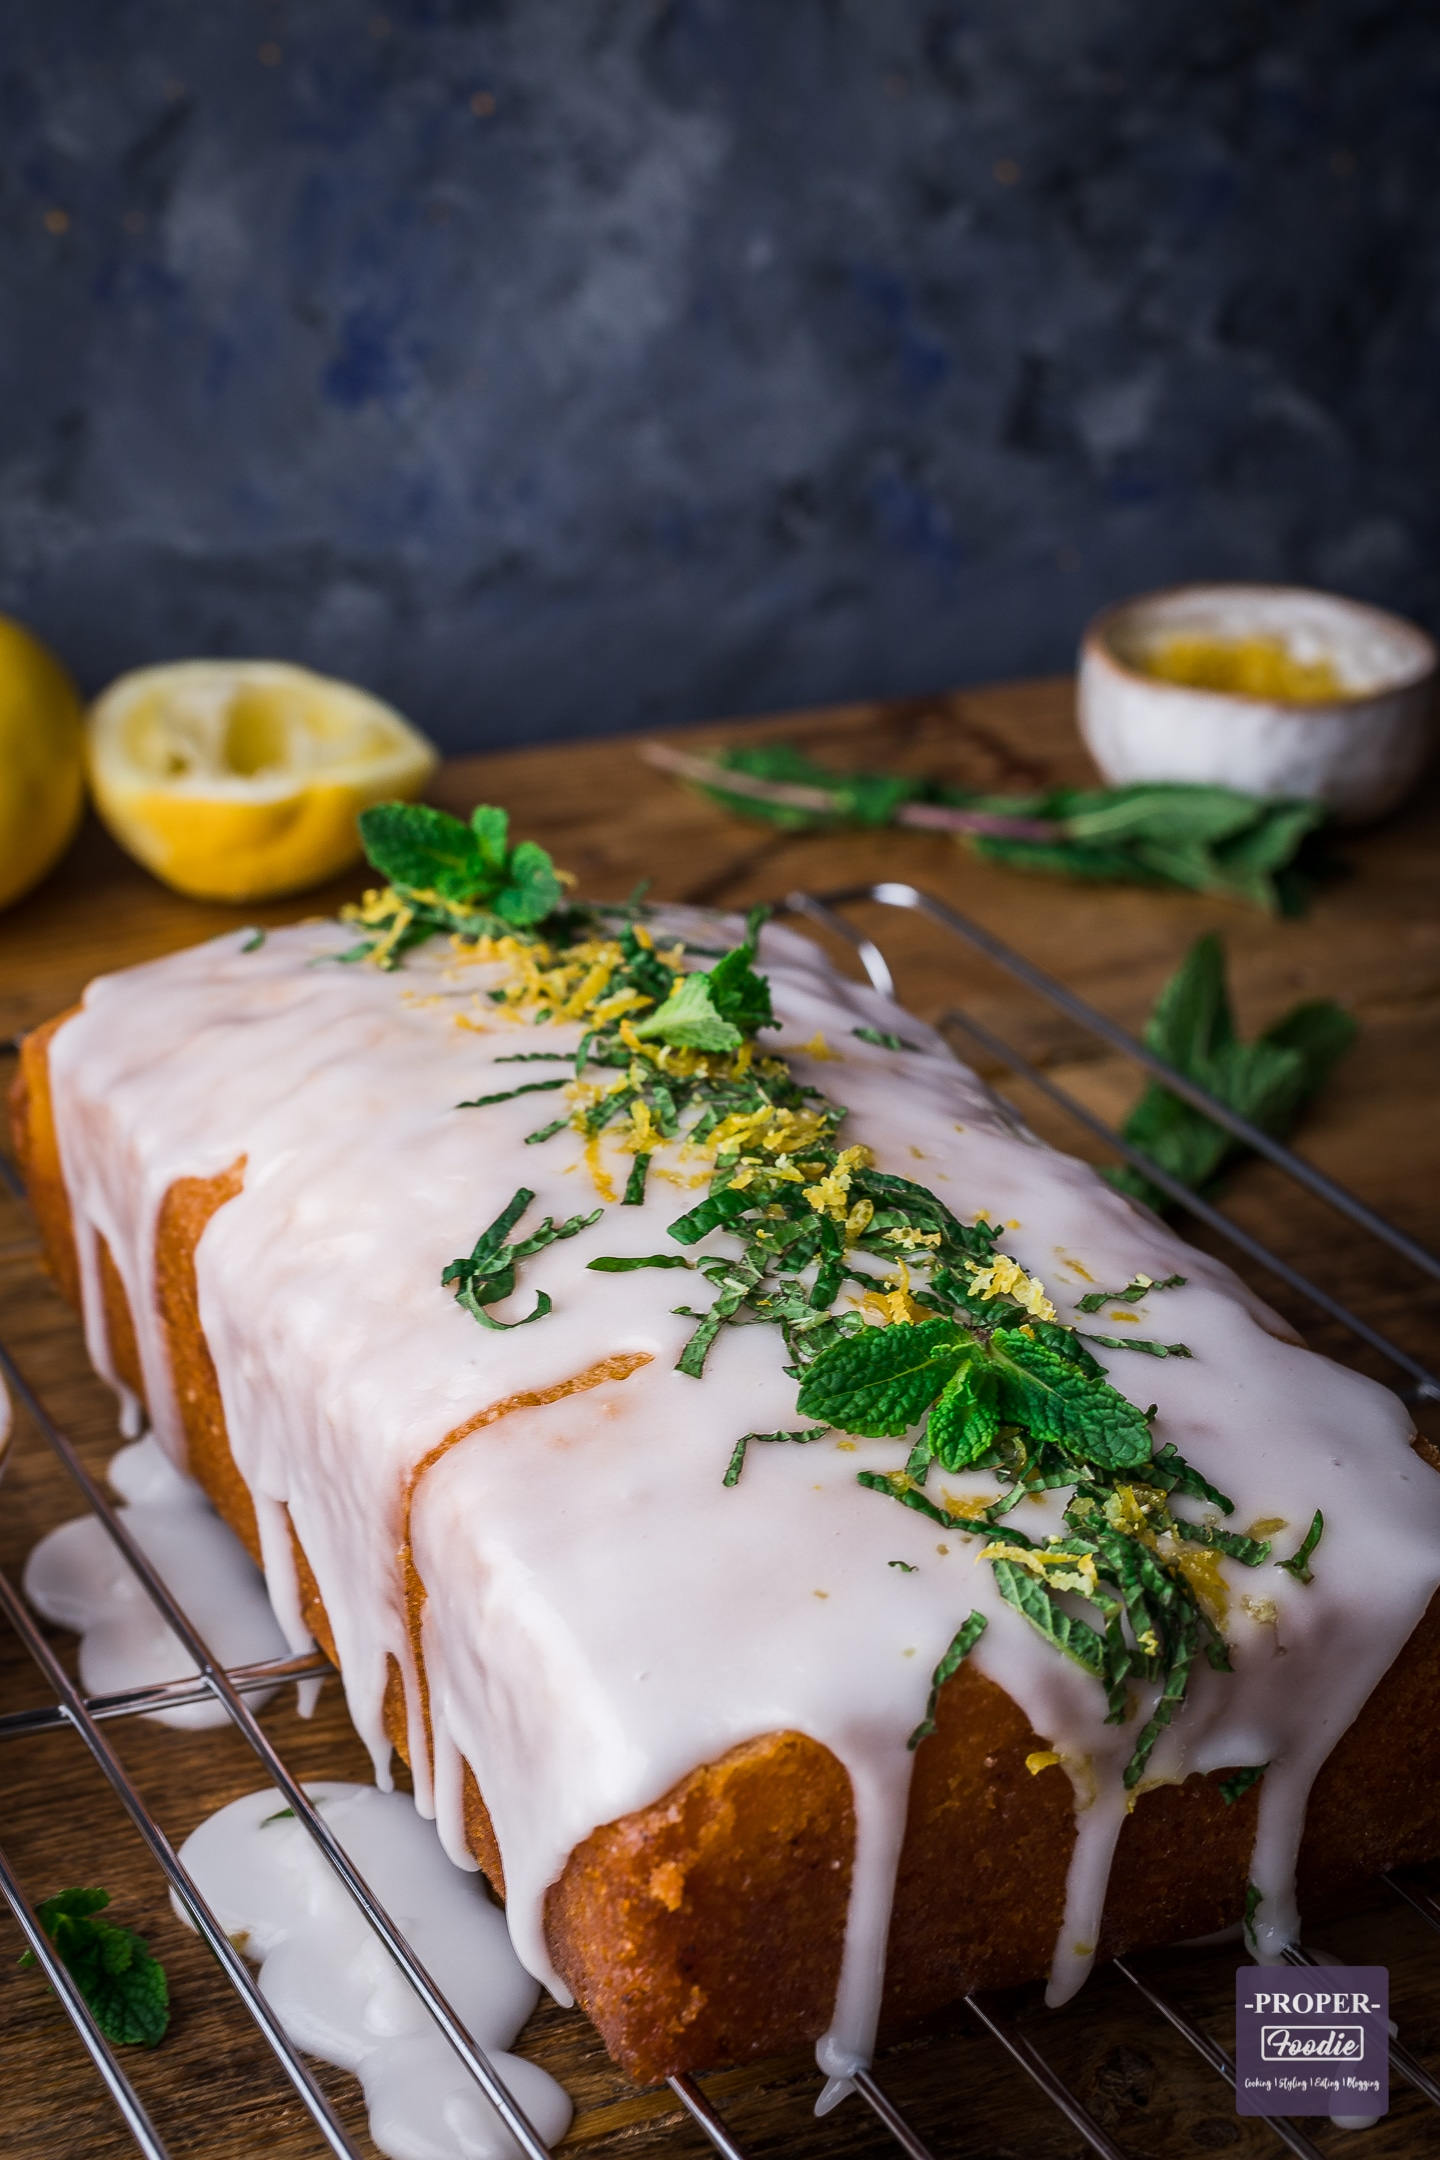 Lemon drizzle cake with lemon icing and topped with lemon zest and mint